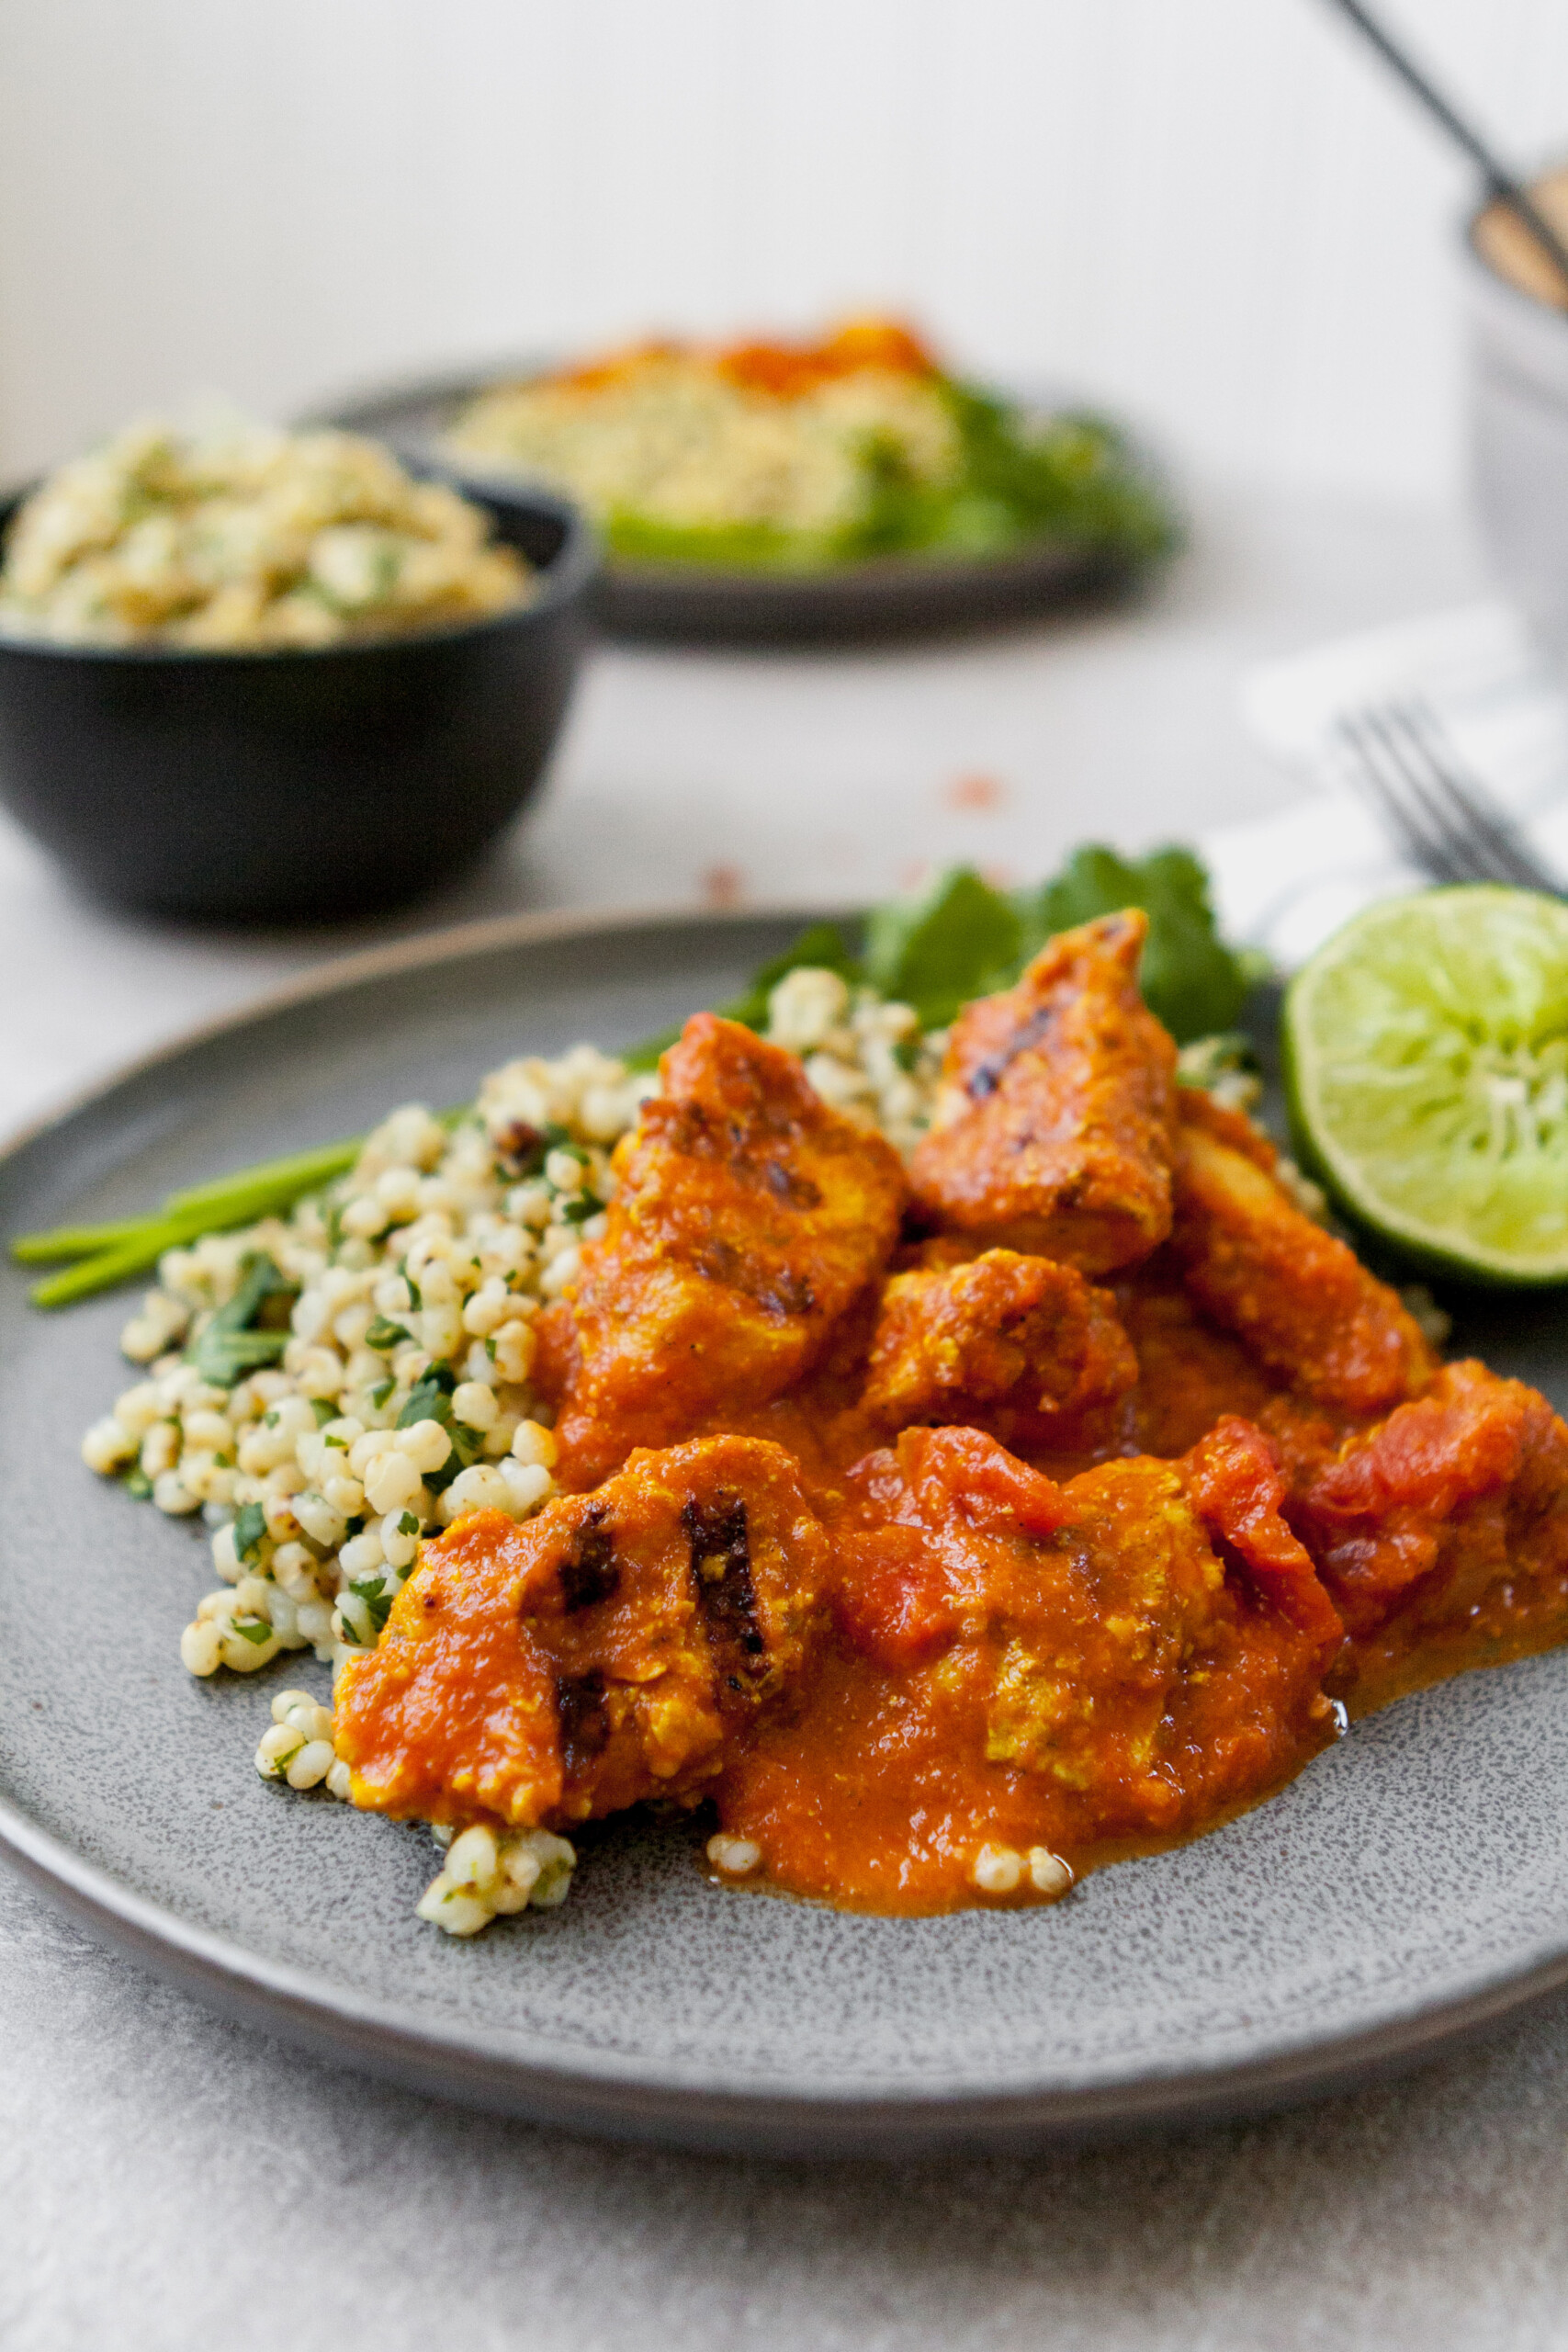 This lightened Chicken Tikka Masala is full-flavored, healthy, and even a great make ahead meal. Atop a bed of cilantro-lime sorghum, this is a classic, reinvented. | from Lauren Grant of Zestful Kitchen